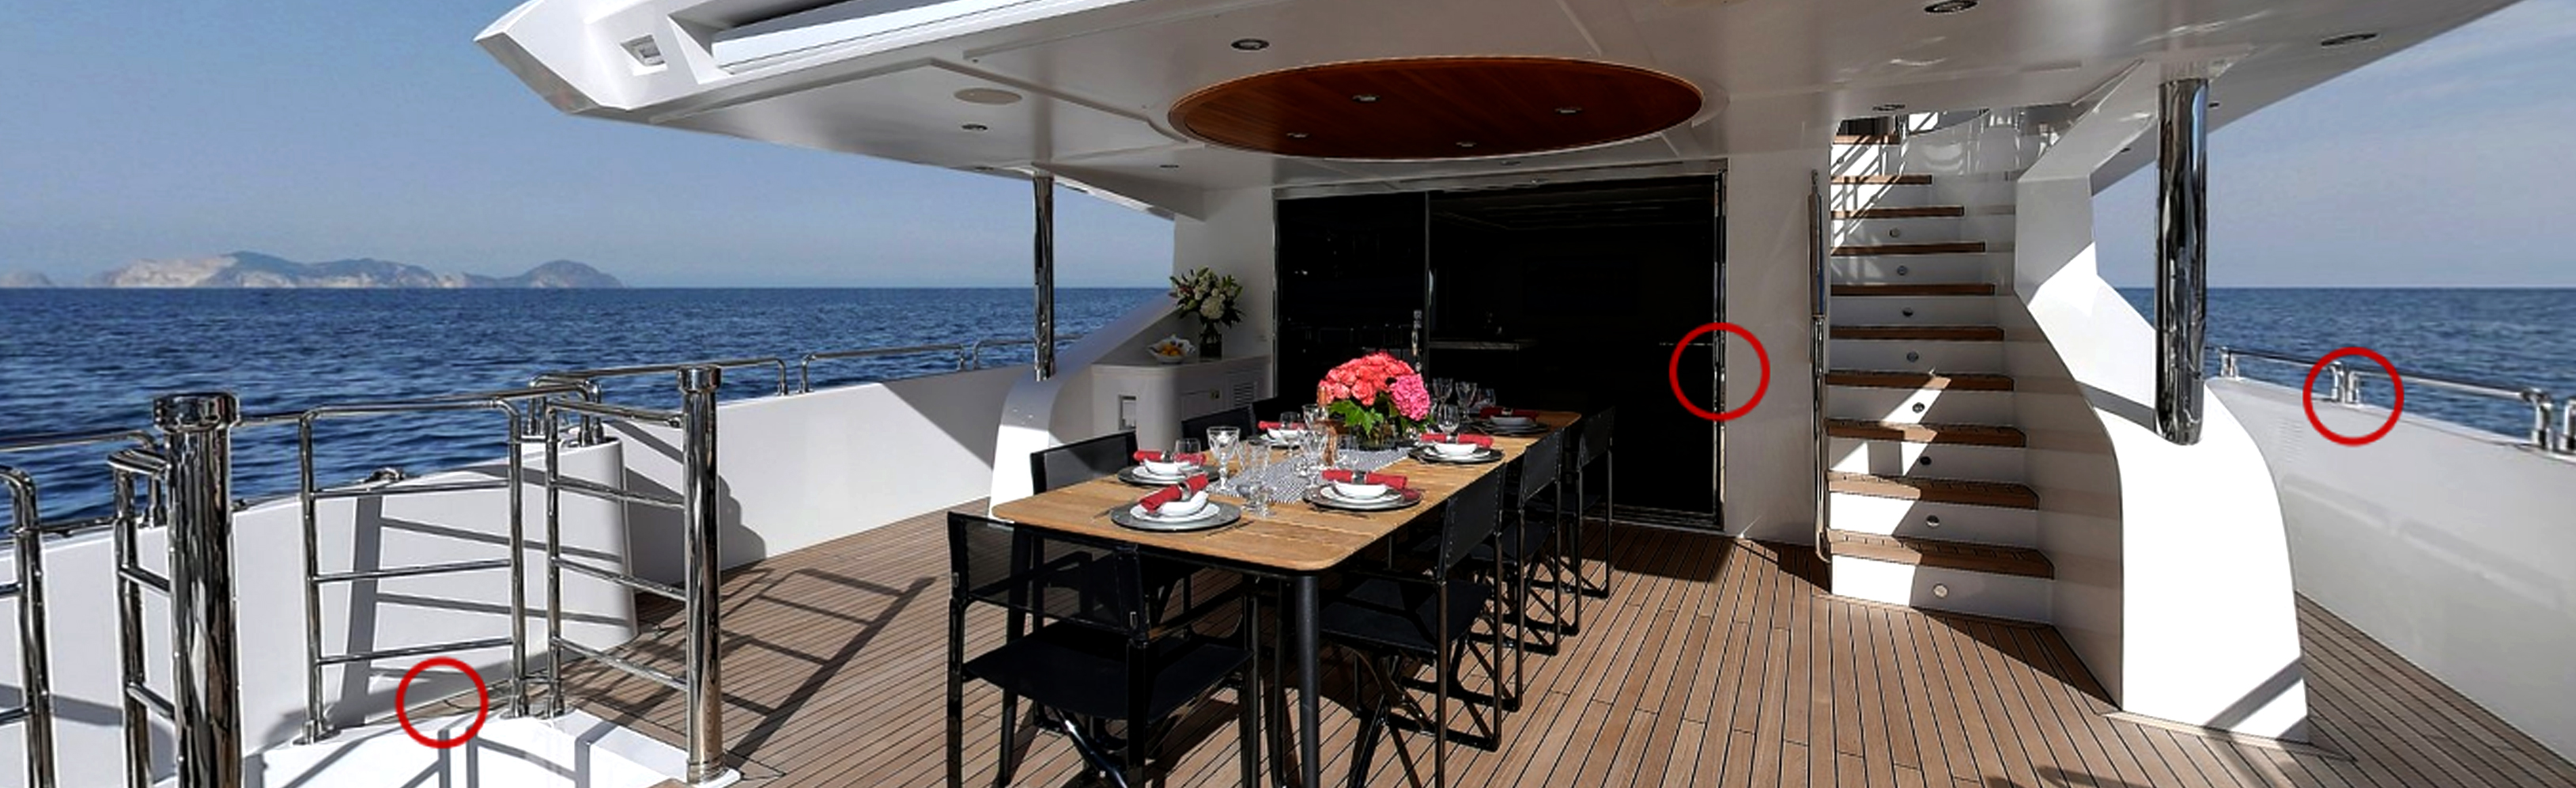 Majesty-125-upper-deck-dining